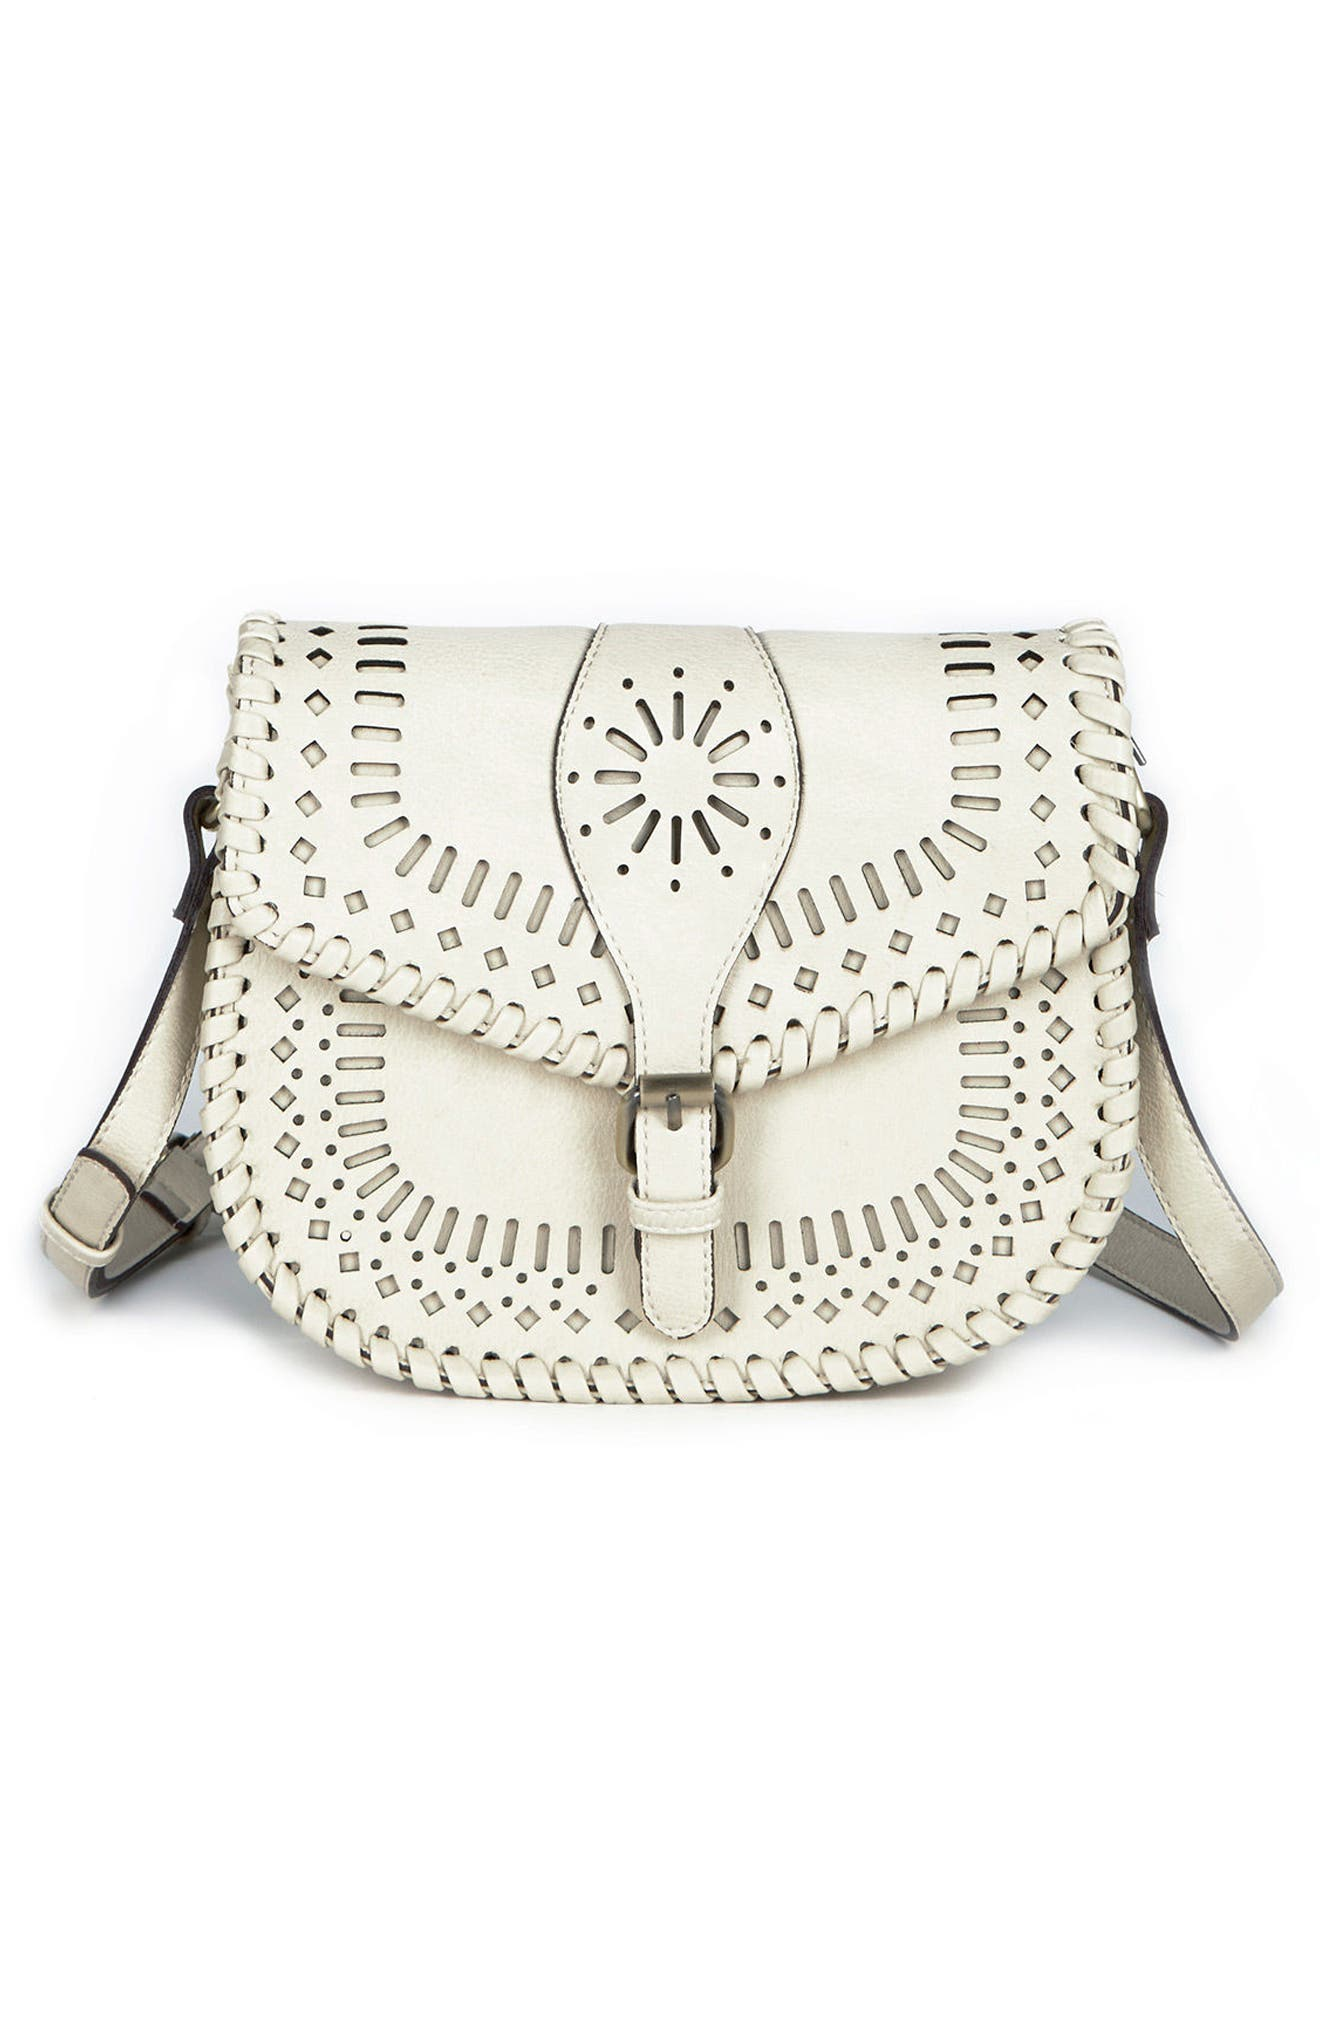 'Kianna' Perforated Faux Leather Crossbody Bag,                             Main thumbnail 1, color,                             Ivory